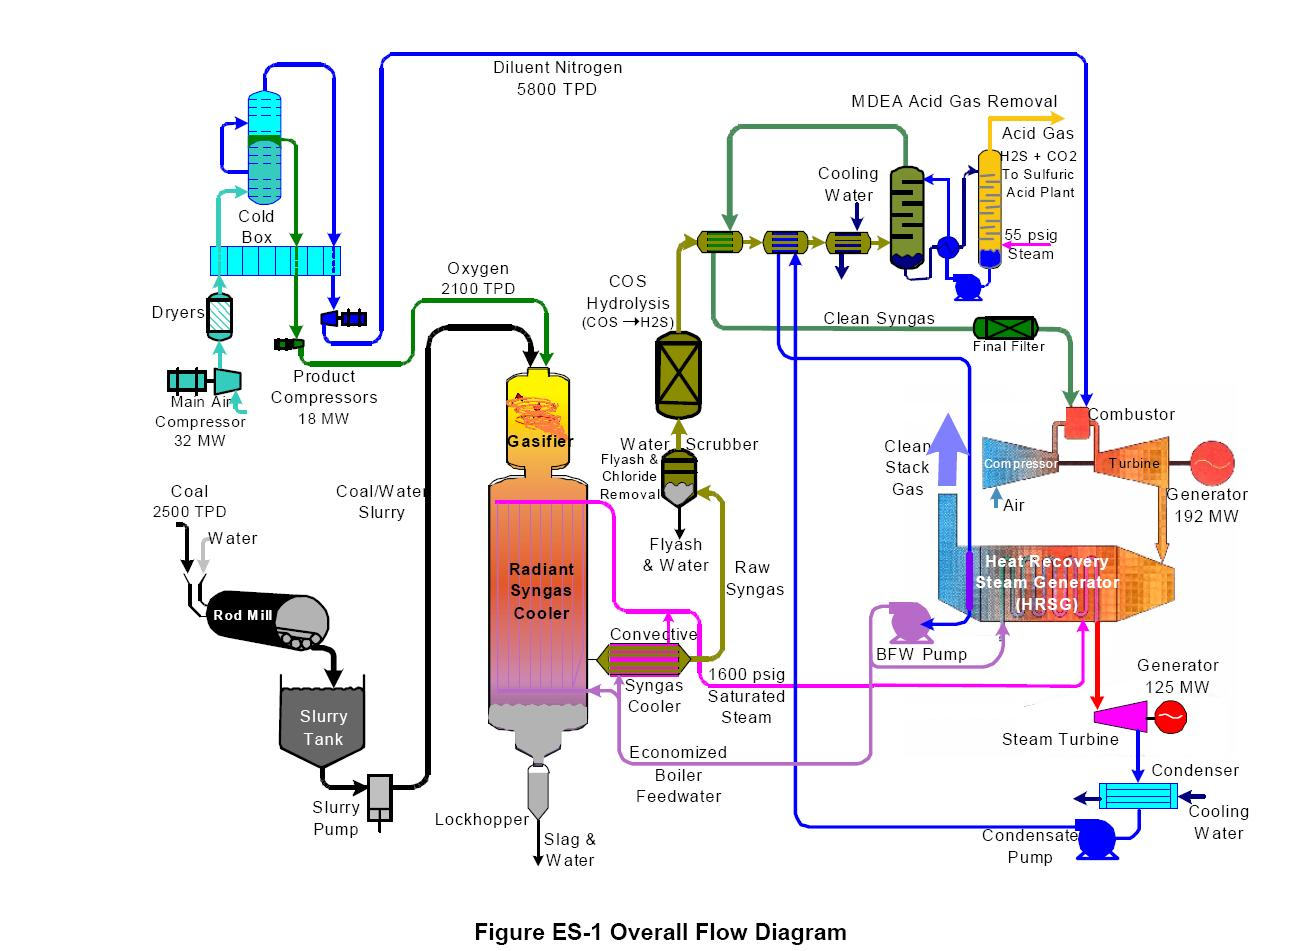 Power Plant Electrical Diagram Wiring Library Diy Wind Turbine Diagrams Igcc Schematic From Doe Report